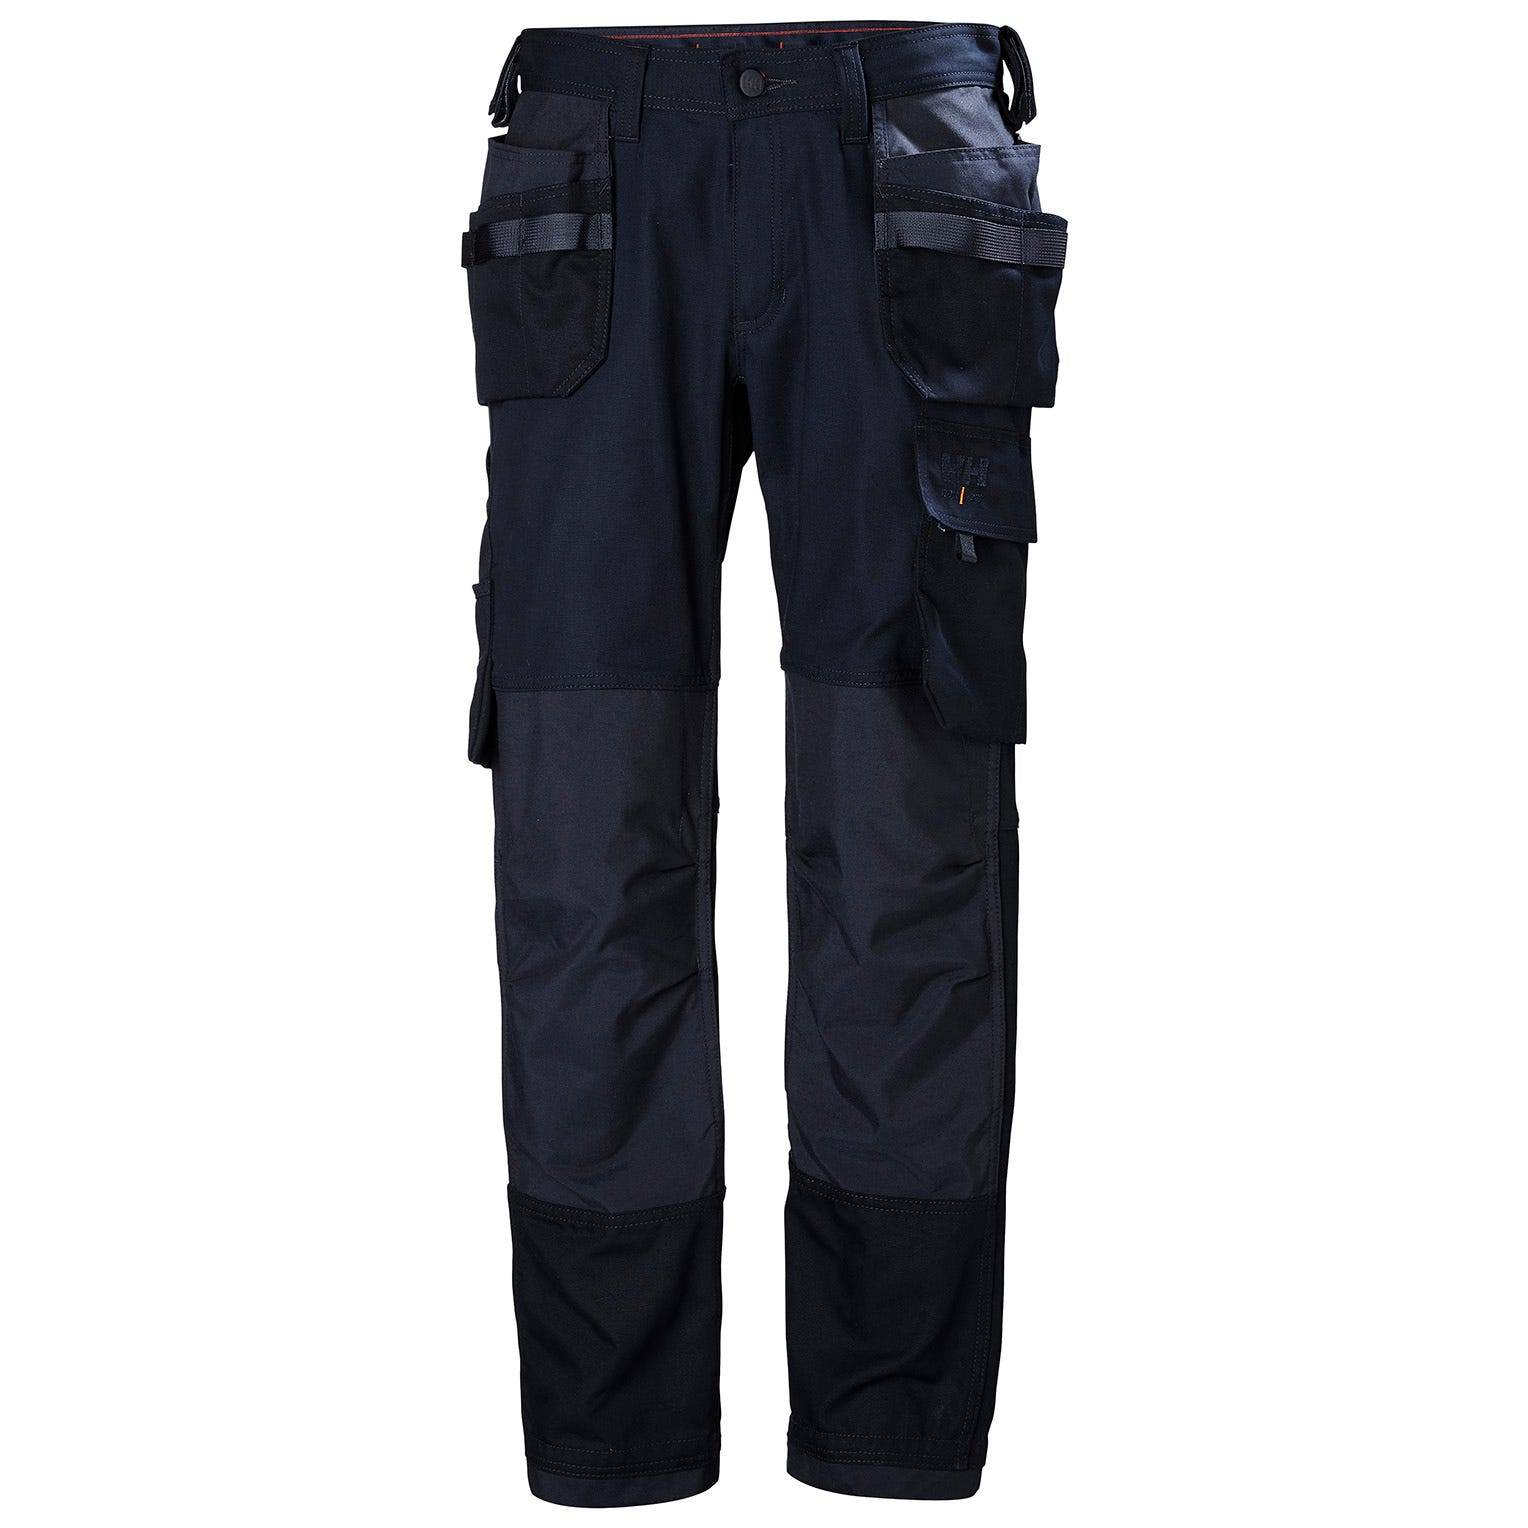 HH Workwear Work Oxford Construction Pant D108 Navy